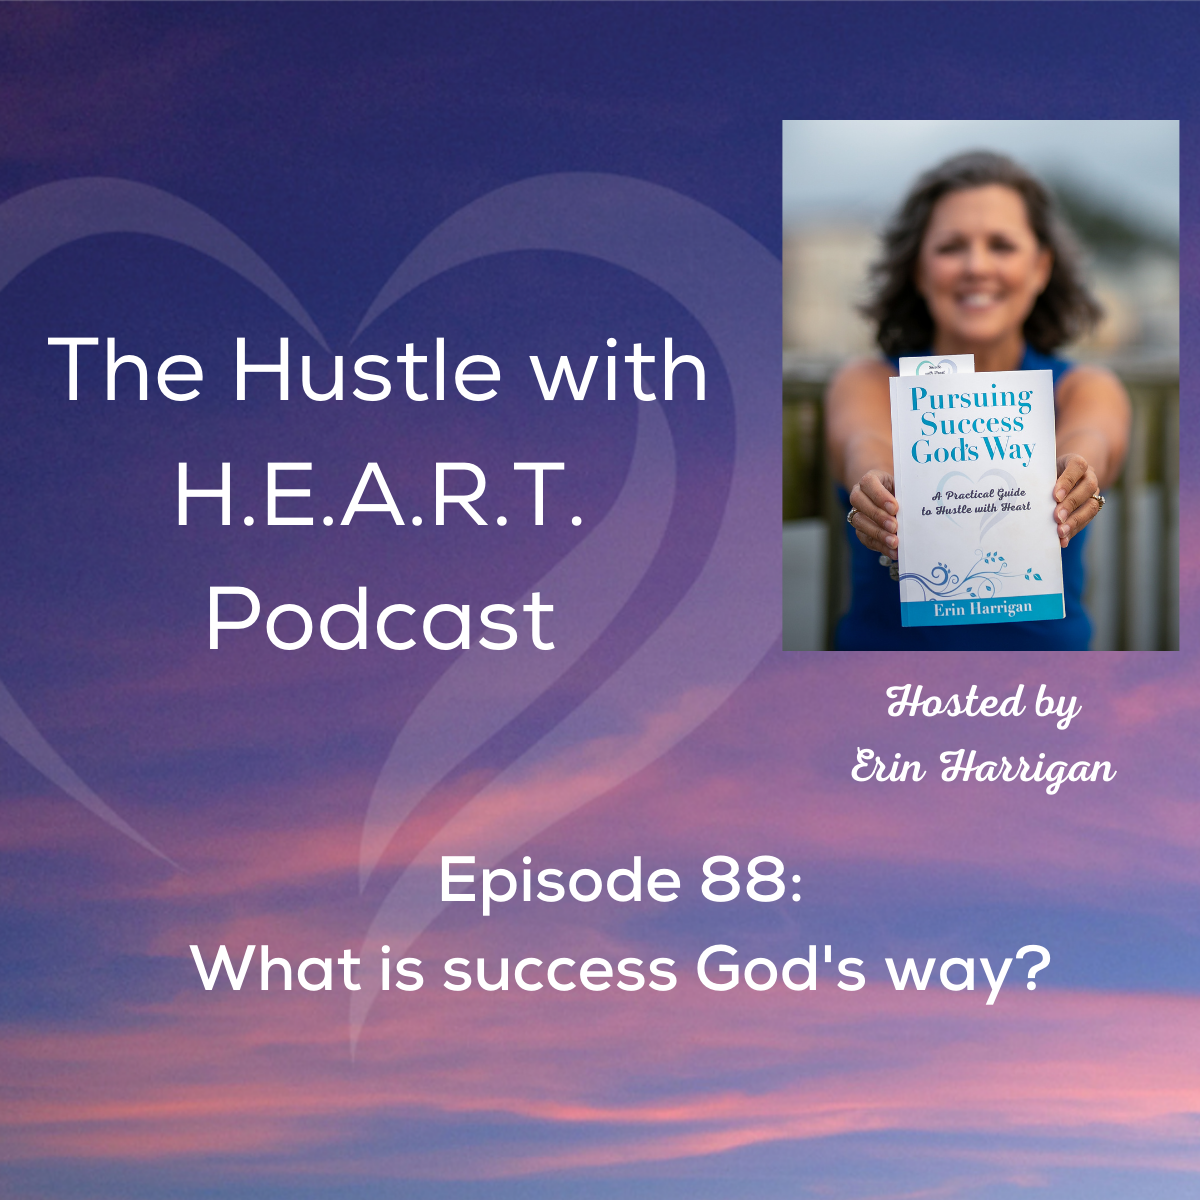 Episode 88: What is success God's way?